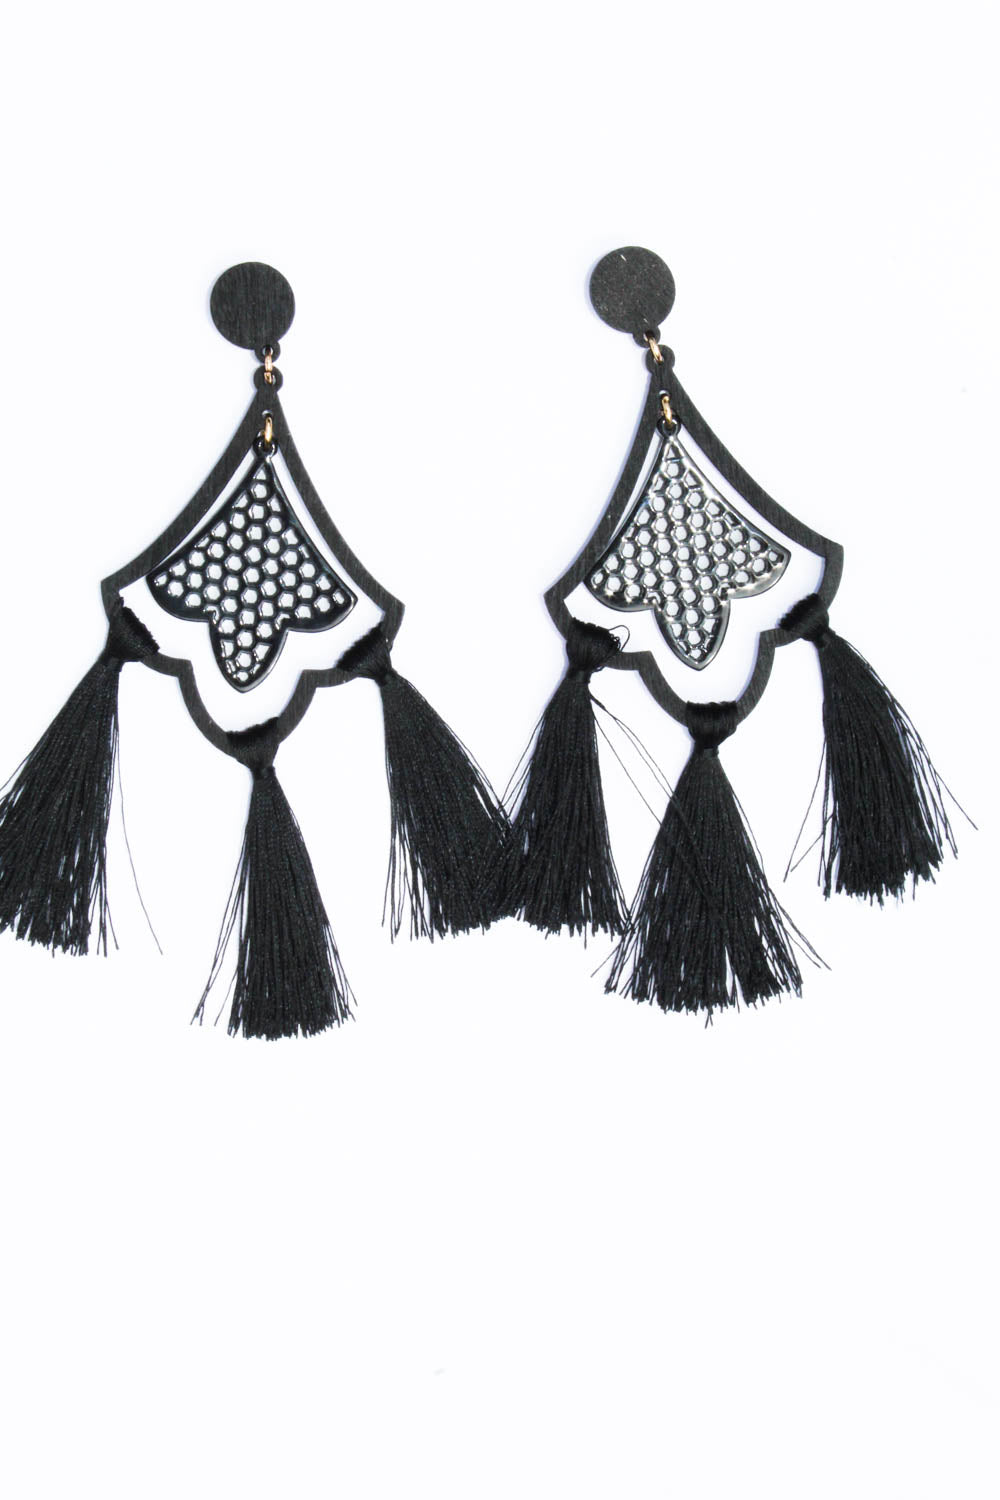 ALLURA BLACK EARRINGS